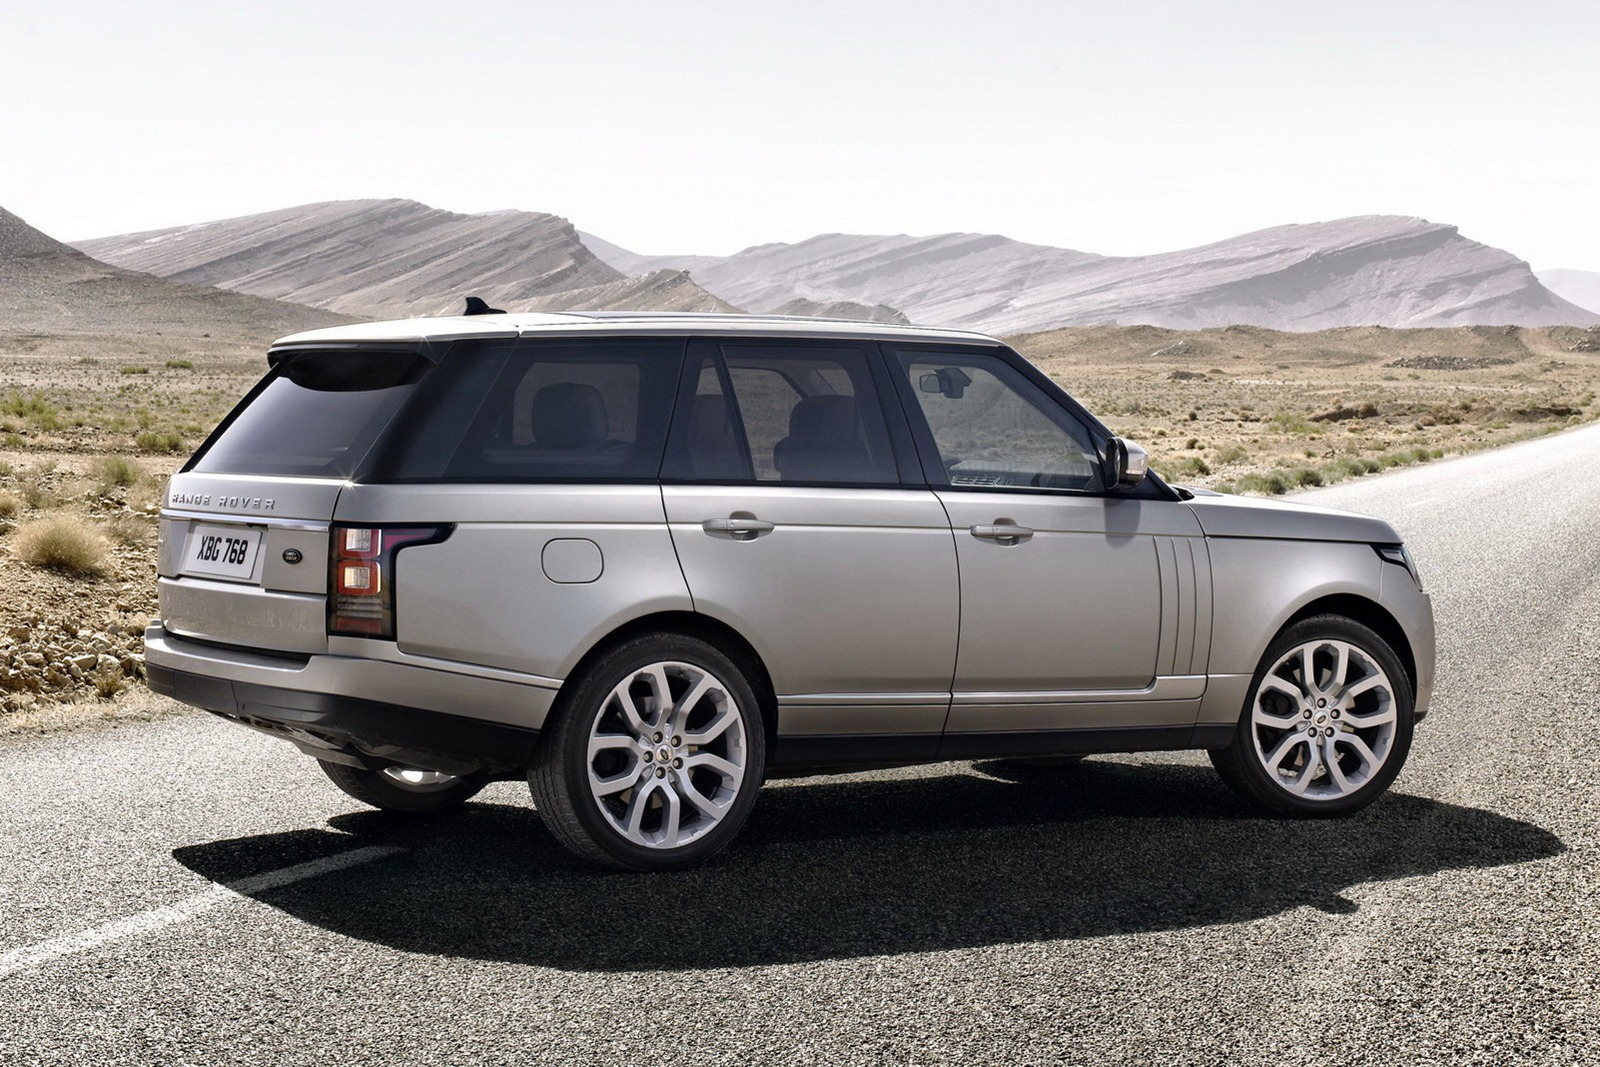 price land rover range rover 4 in india price dakho india 2013 reviews and details top cars. Black Bedroom Furniture Sets. Home Design Ideas